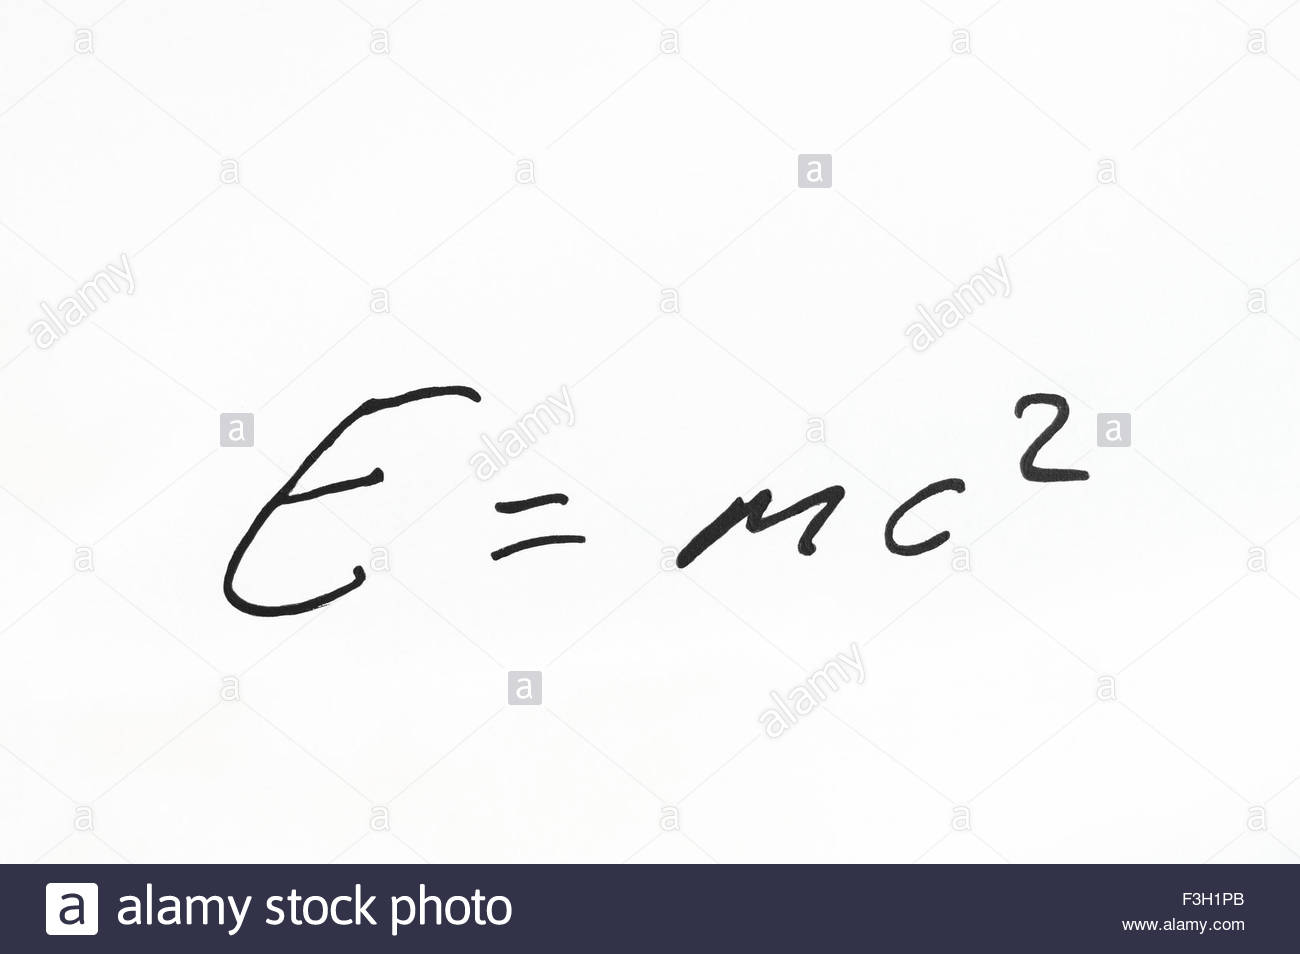 E=mc2 - Albert Einstein's special theory of relativity equation - Stock Image